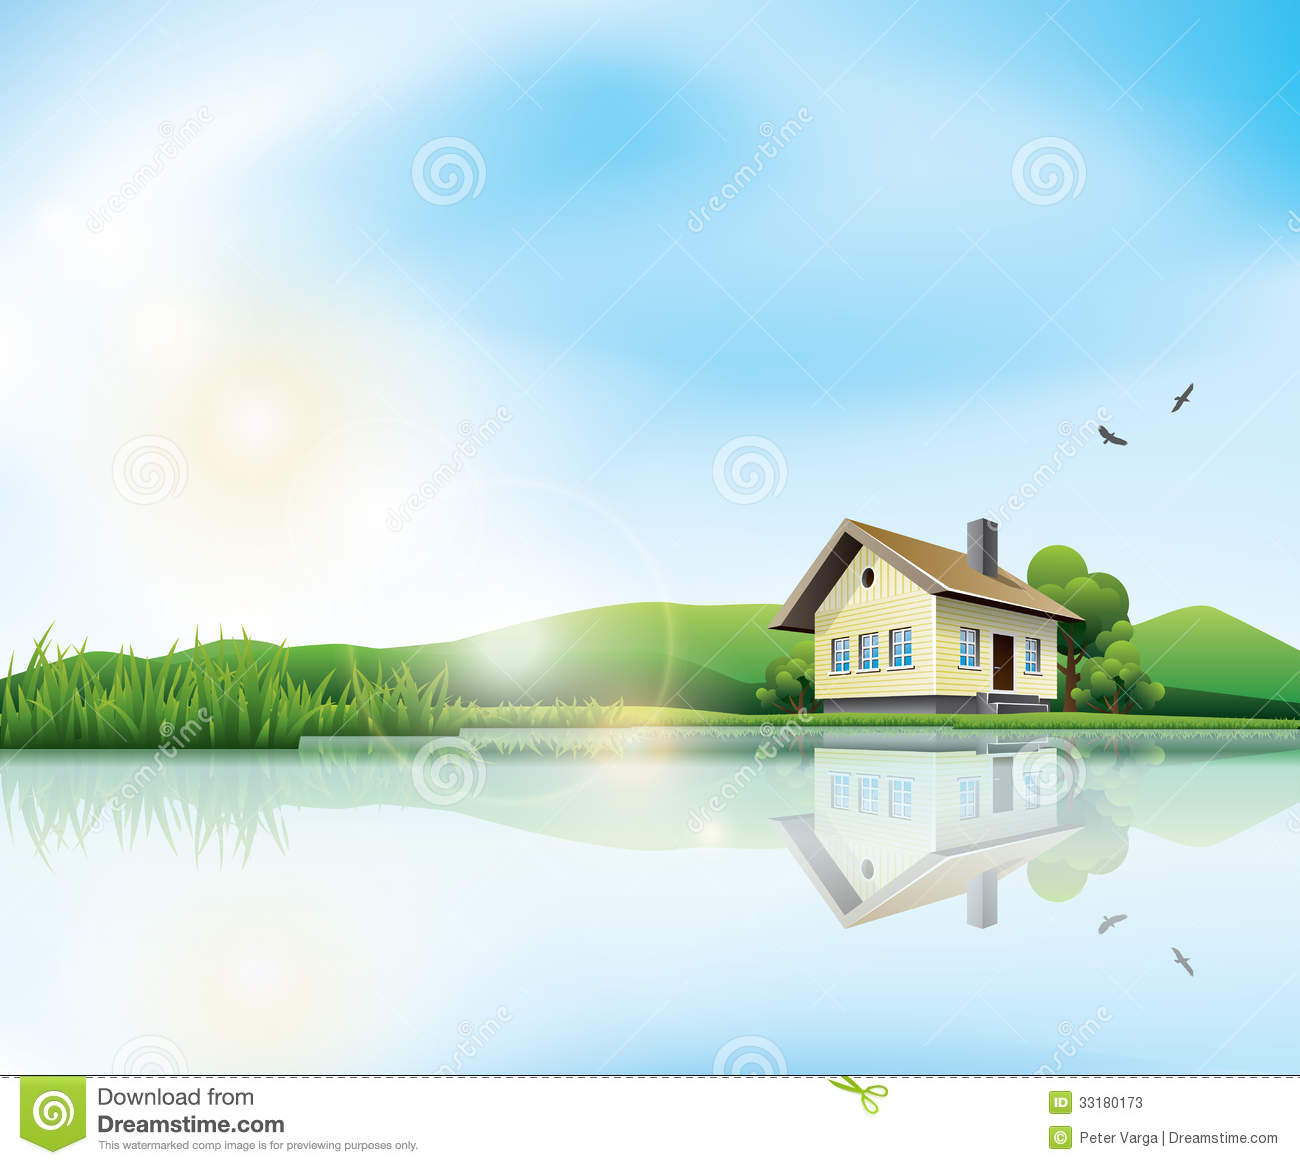 Landscape Illustration Vector Free: House At The Lake Stock Vector. Illustration Of